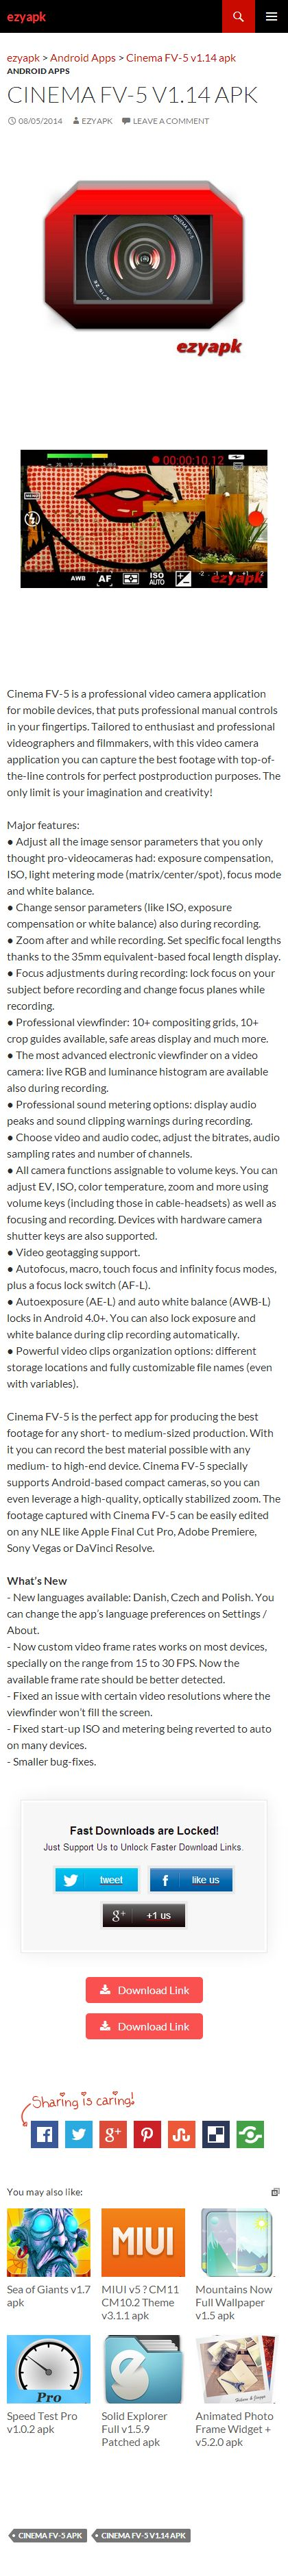 Android Apps Cinema FV-5 v1.14 apk - ezyapk Cinema FV-5 is a professional video camera application for mobile devices, that puts professional manual controls in your fingertips. Tailored to enthusiast http://www.ezyapk.com/android-apps/cinema-fv-5-v1-14-apk/